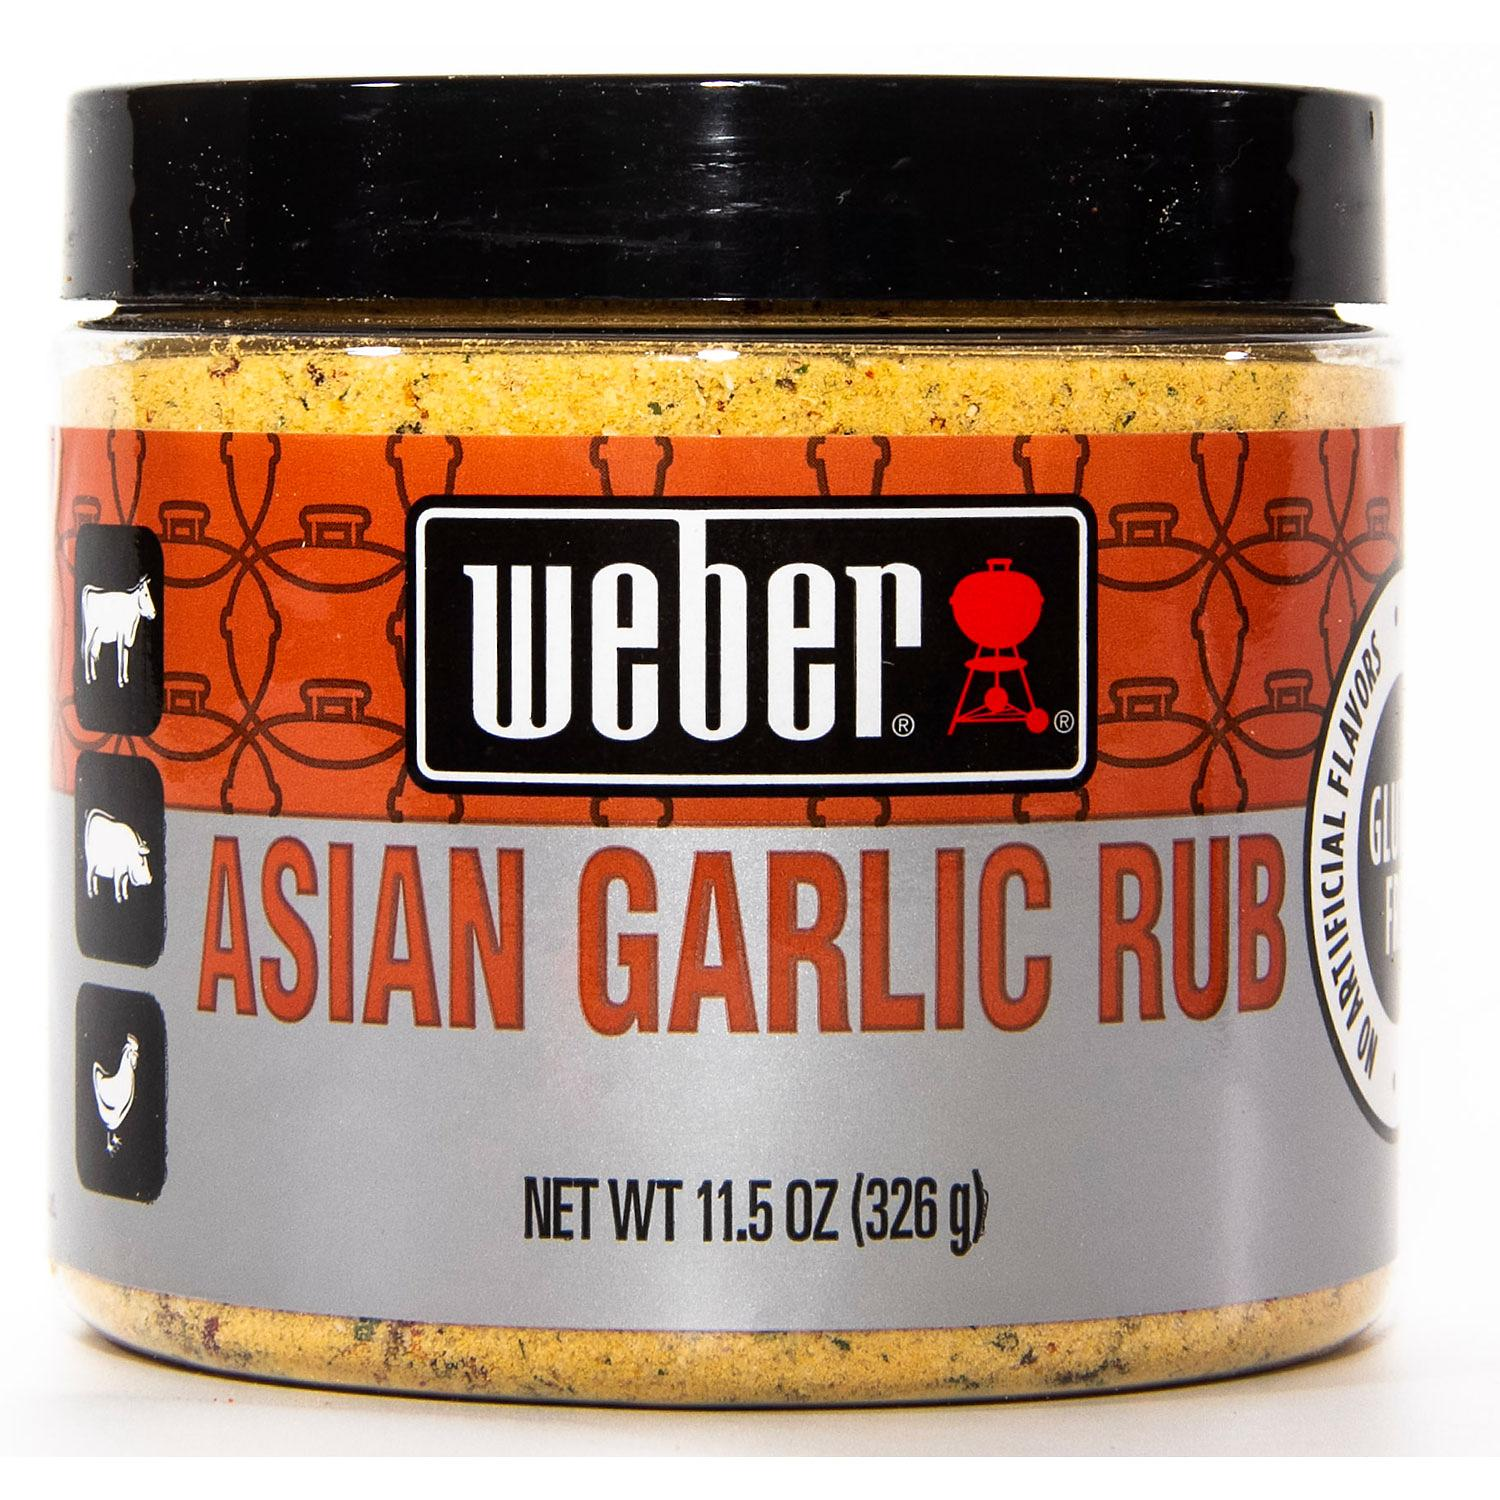 Weber Asian Garlic Rub 11.5oz